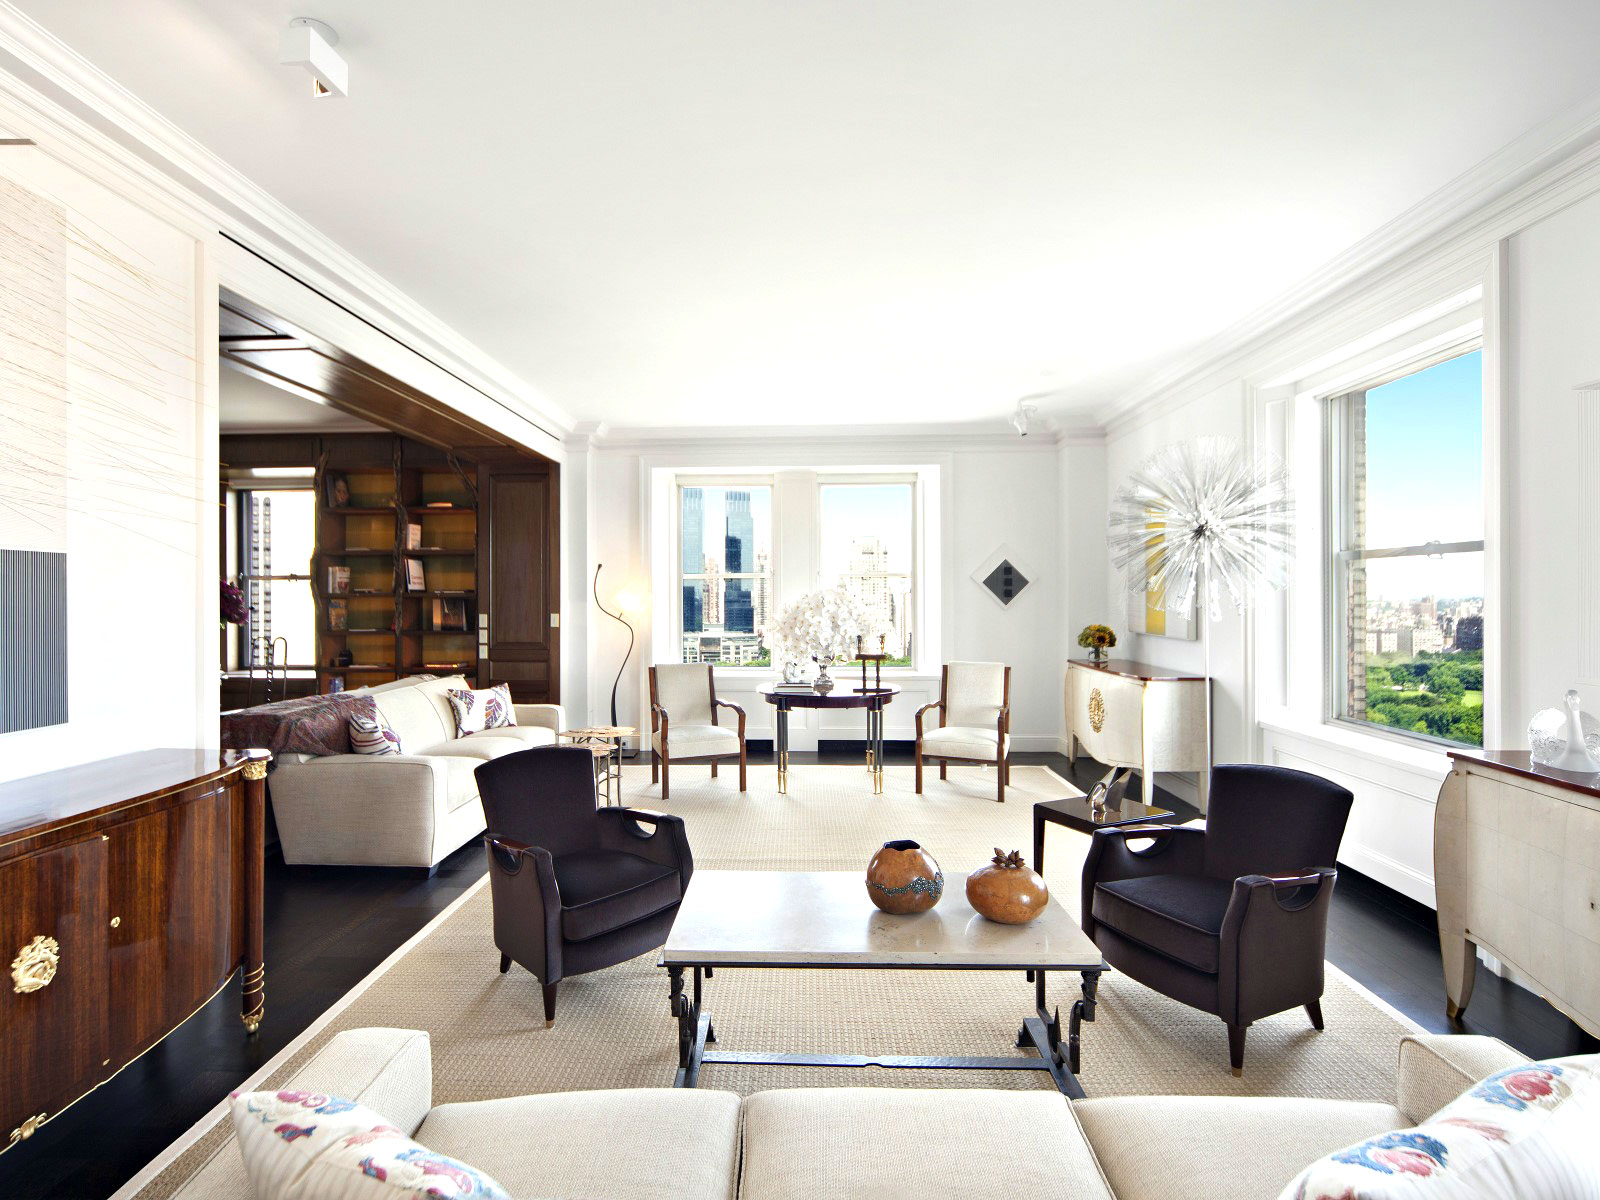 $70 MILLION DOLLAR APARTMENT IN NYC - SEE THIS HOUSE | COCOCOZY